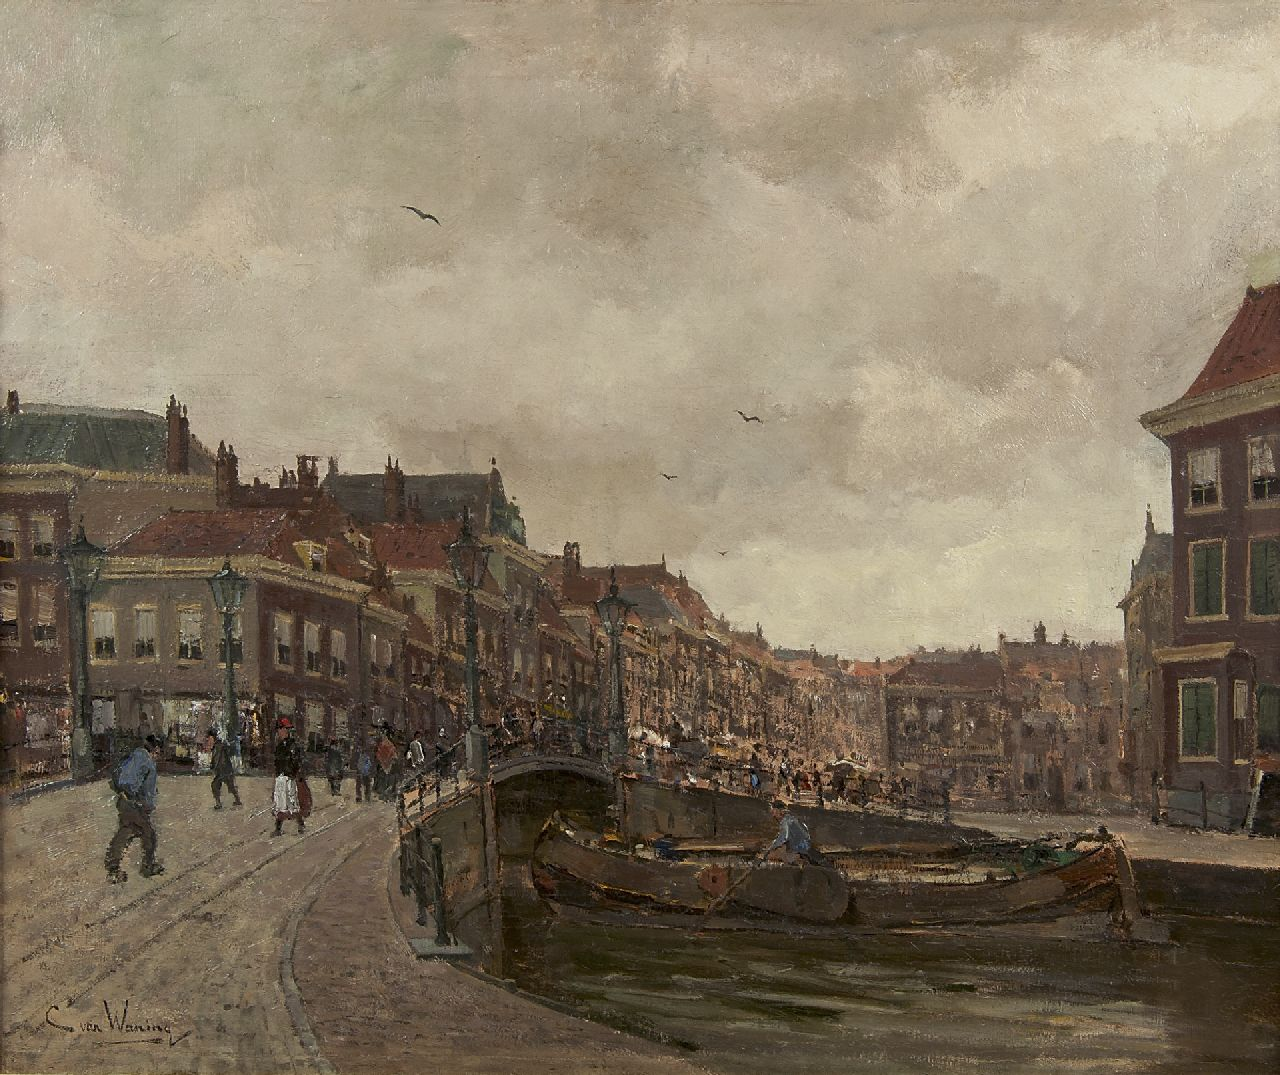 Kees van Waning | A view of the 'Wagenbrug' and the 'Wagenstraat' in The Hague, oil on canvas, 51.2 x 61.3 cm, signed l.l.